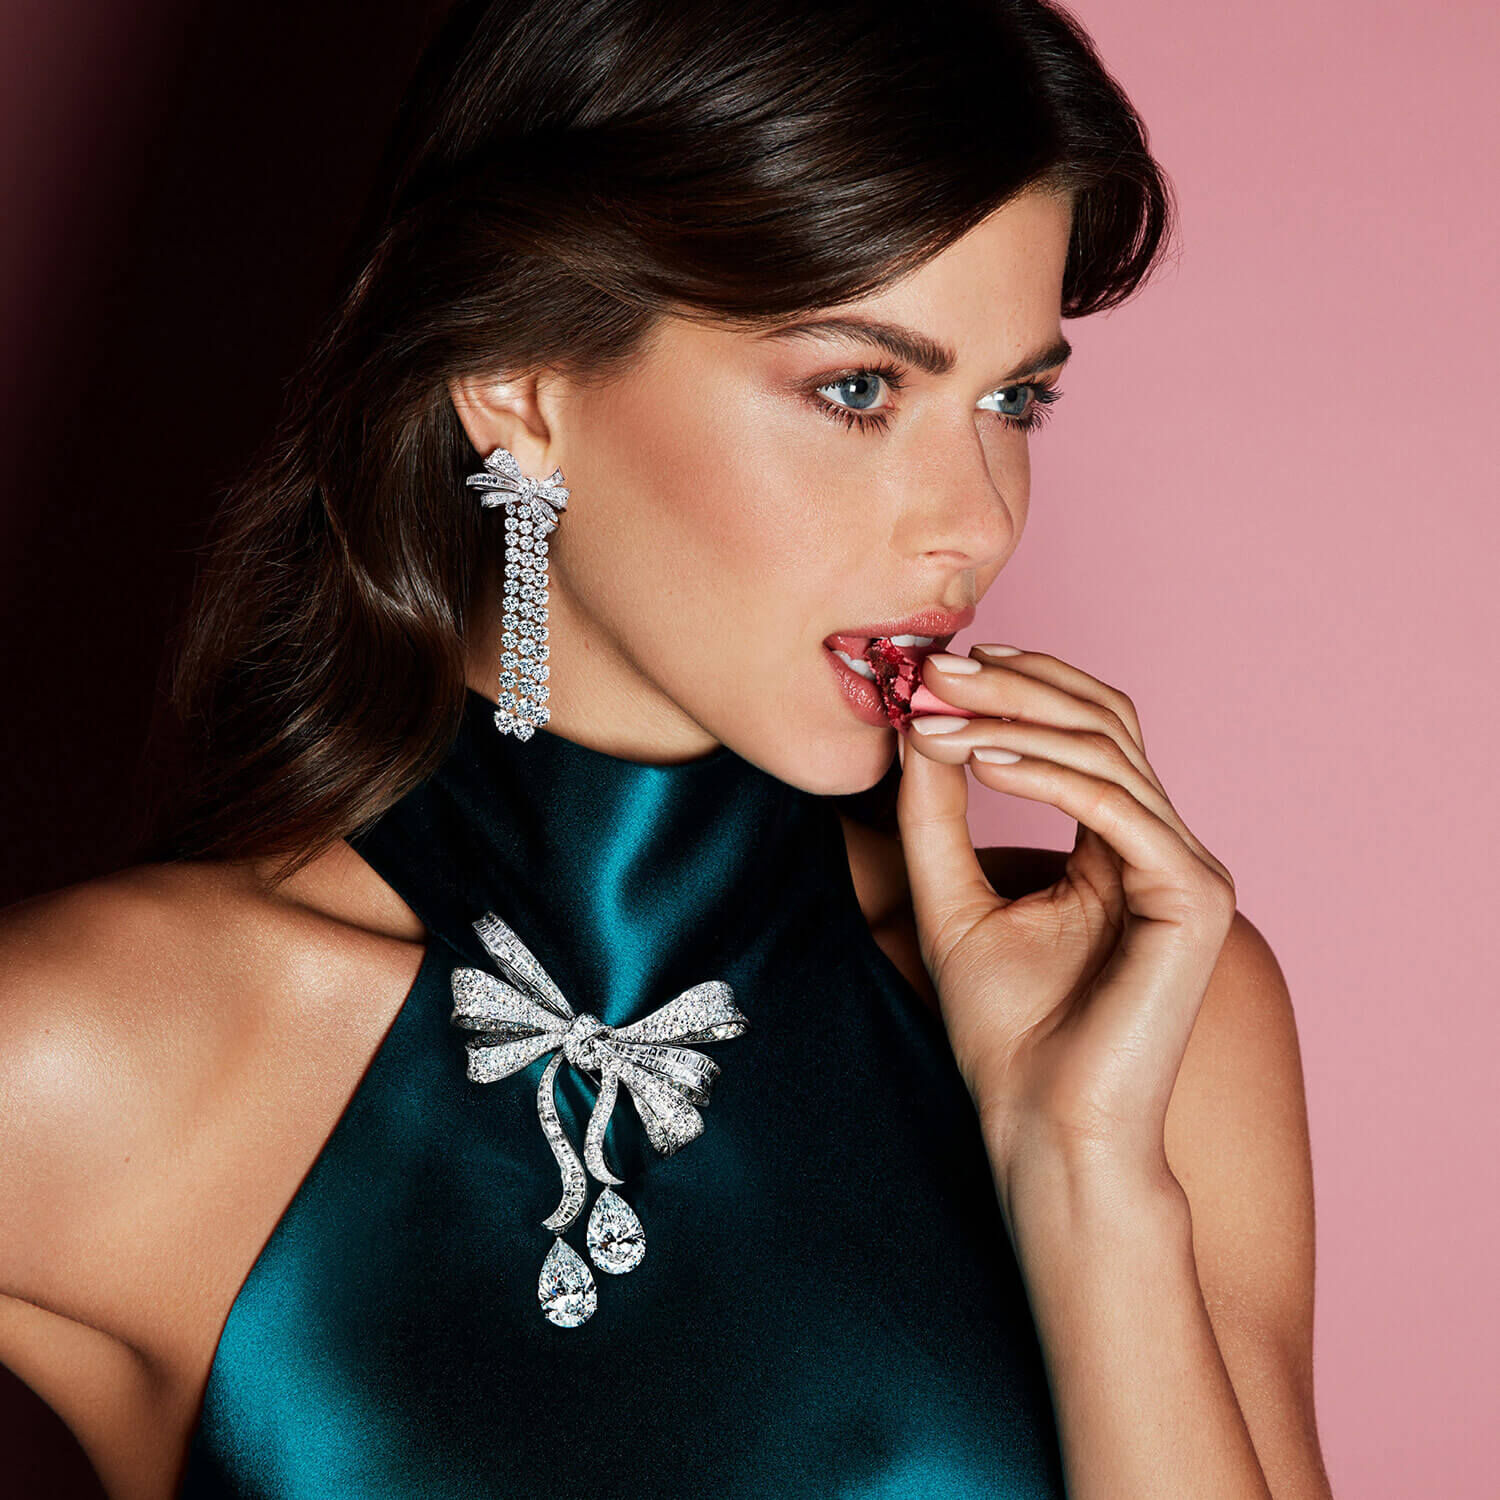 A lady on a pink background wearing ornate bow styled diamond necklace and earrings